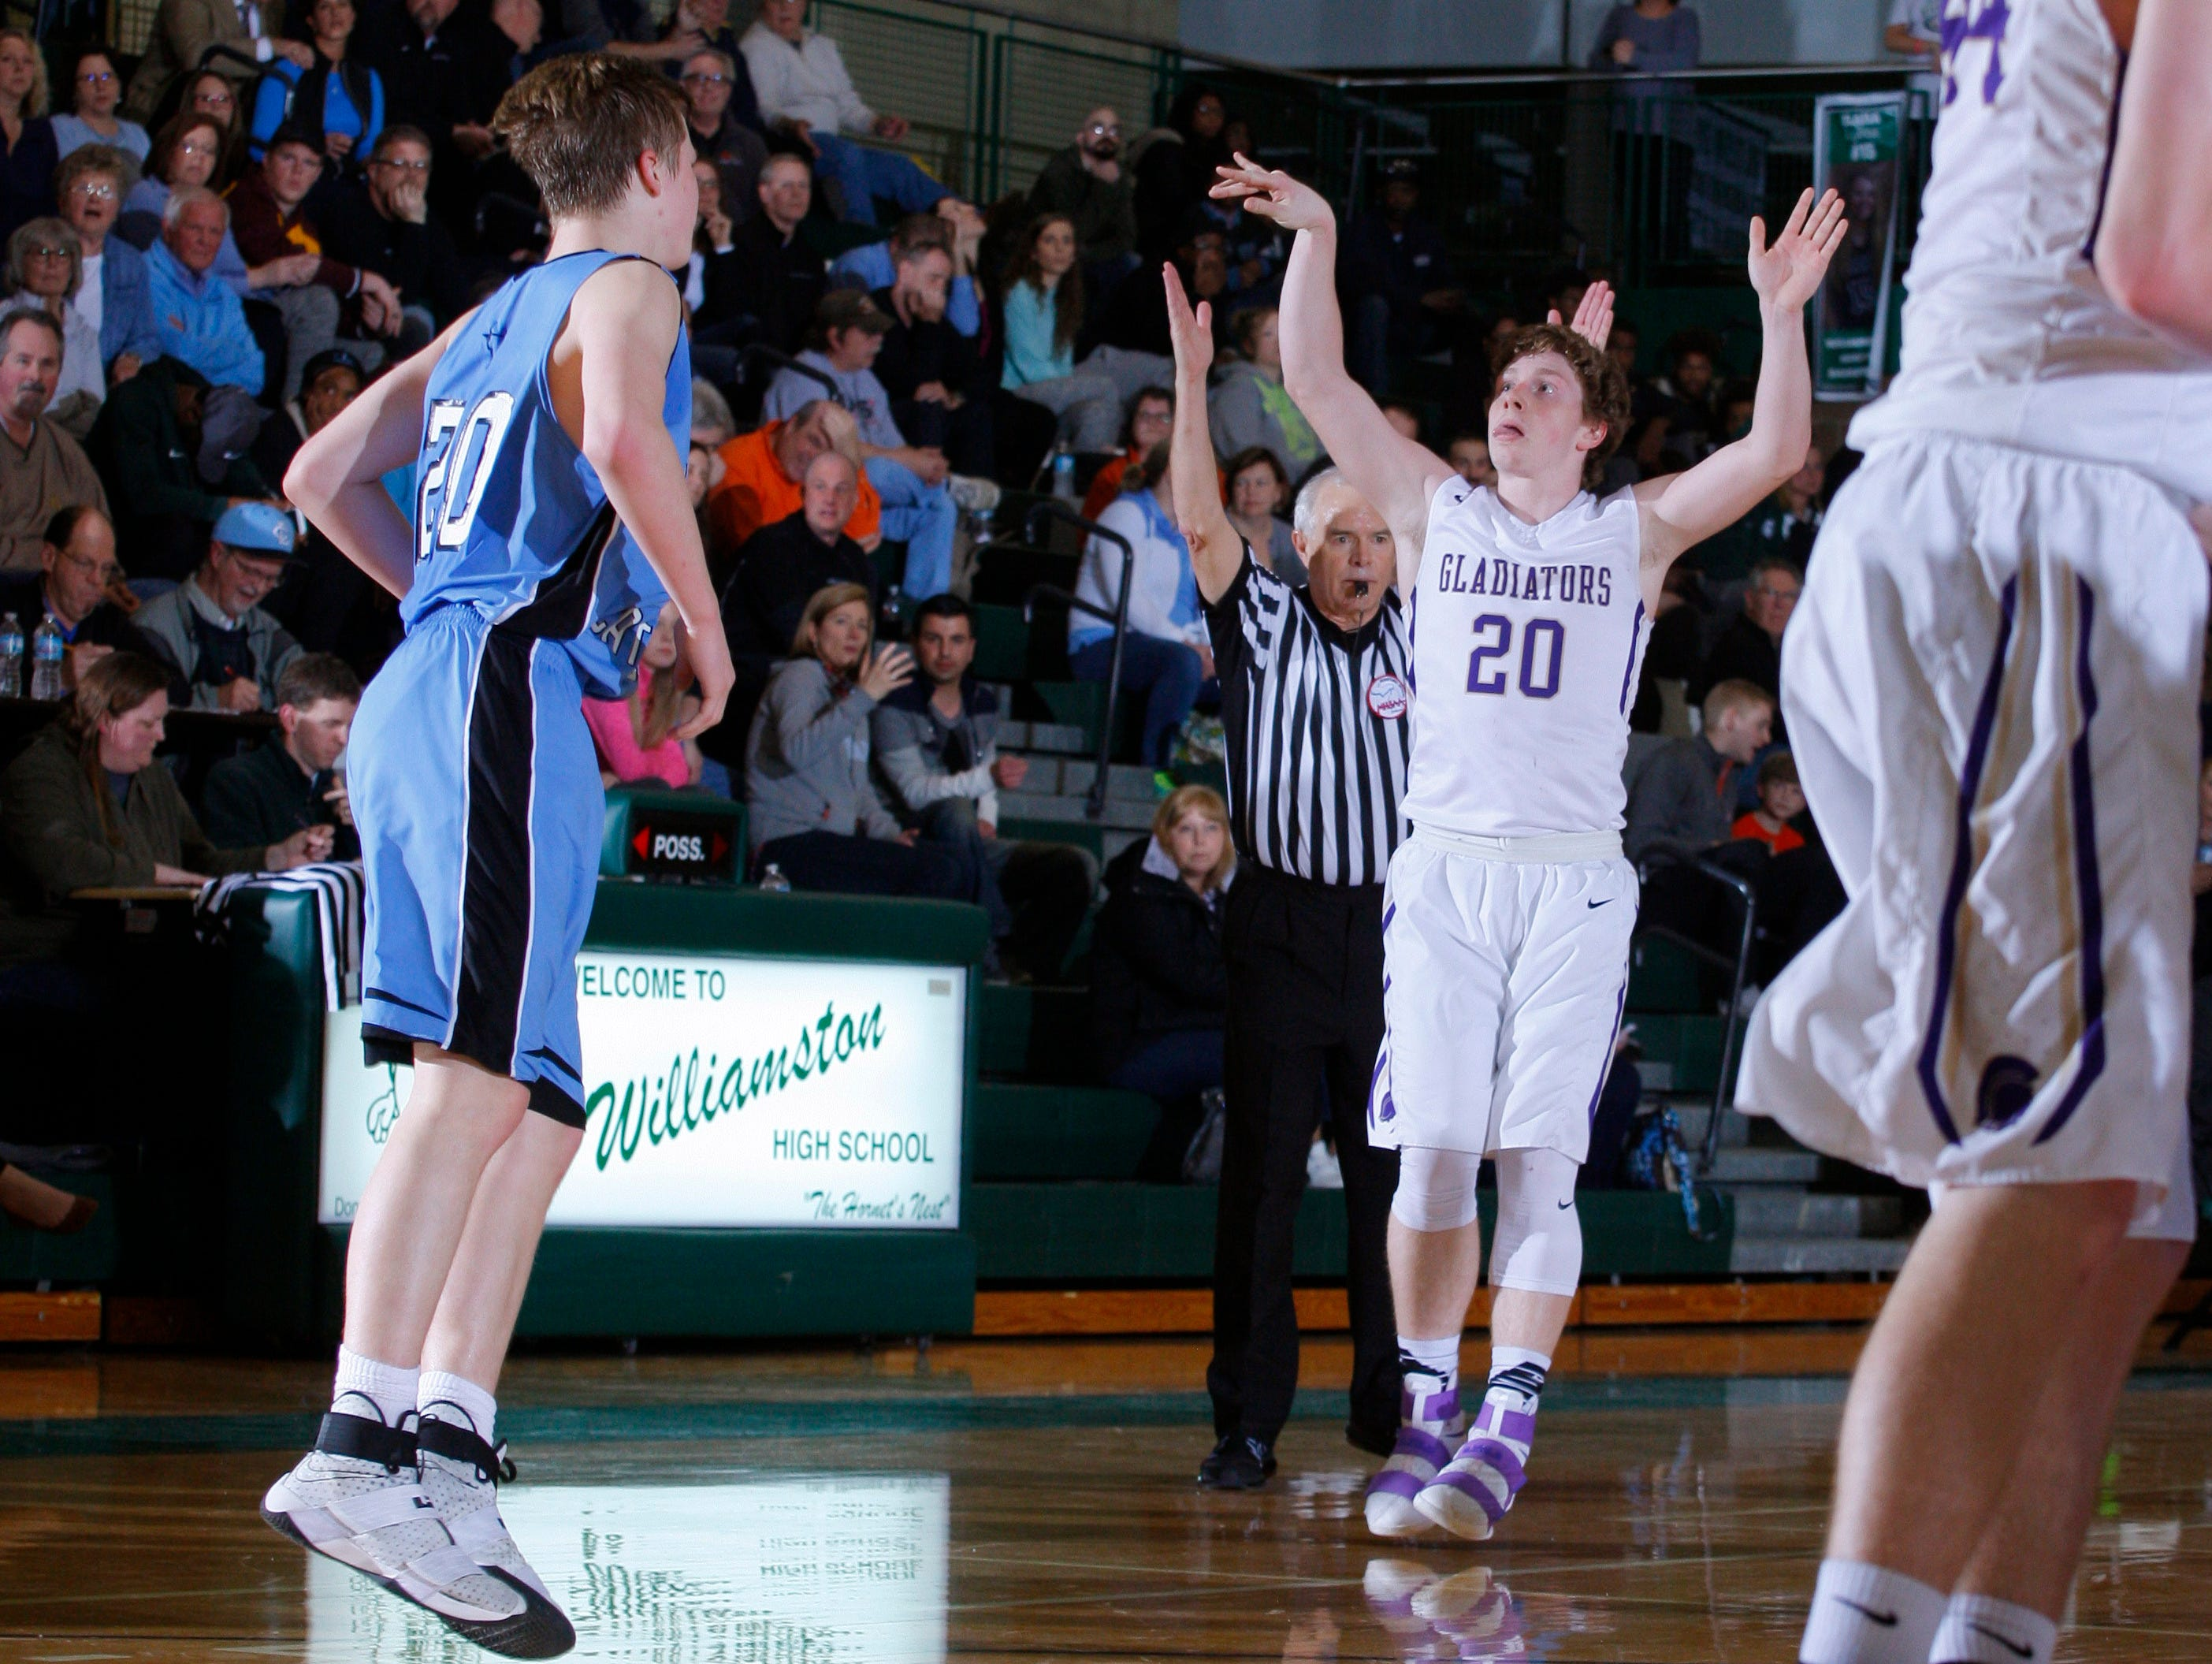 Fowlerville's Cam Brigham, right, reacts after sinking a three against Lansing Catholic's Matthew Plaehn during their district game Monday, March 6, 2017, in East Lansing, Mich. Fowlerville won 66-52.